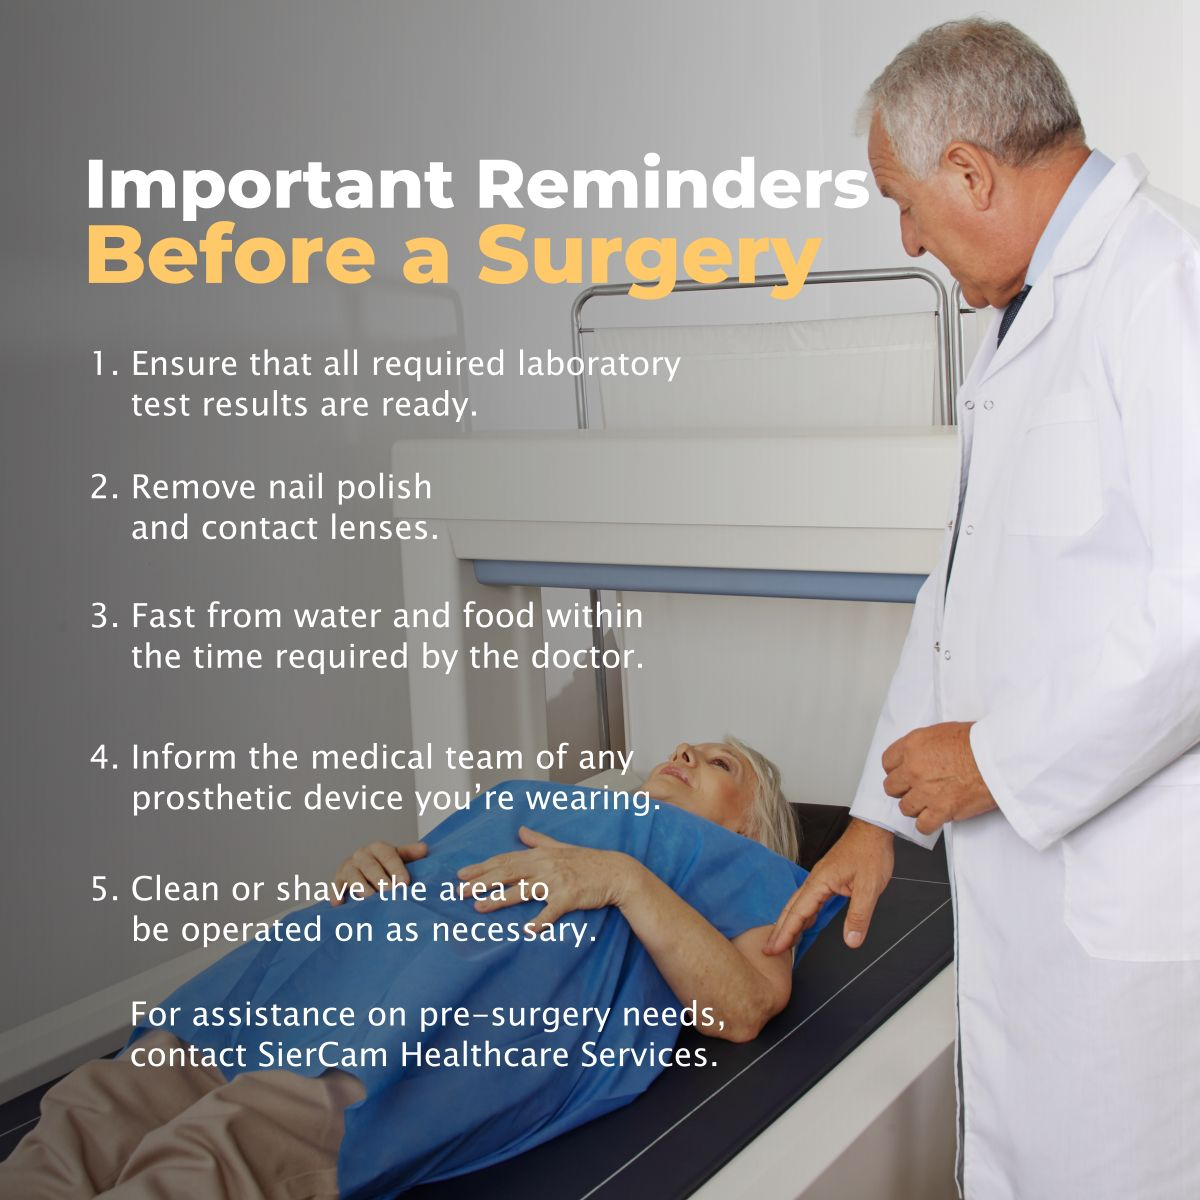 Important Reminders Before a Surgery Reminder